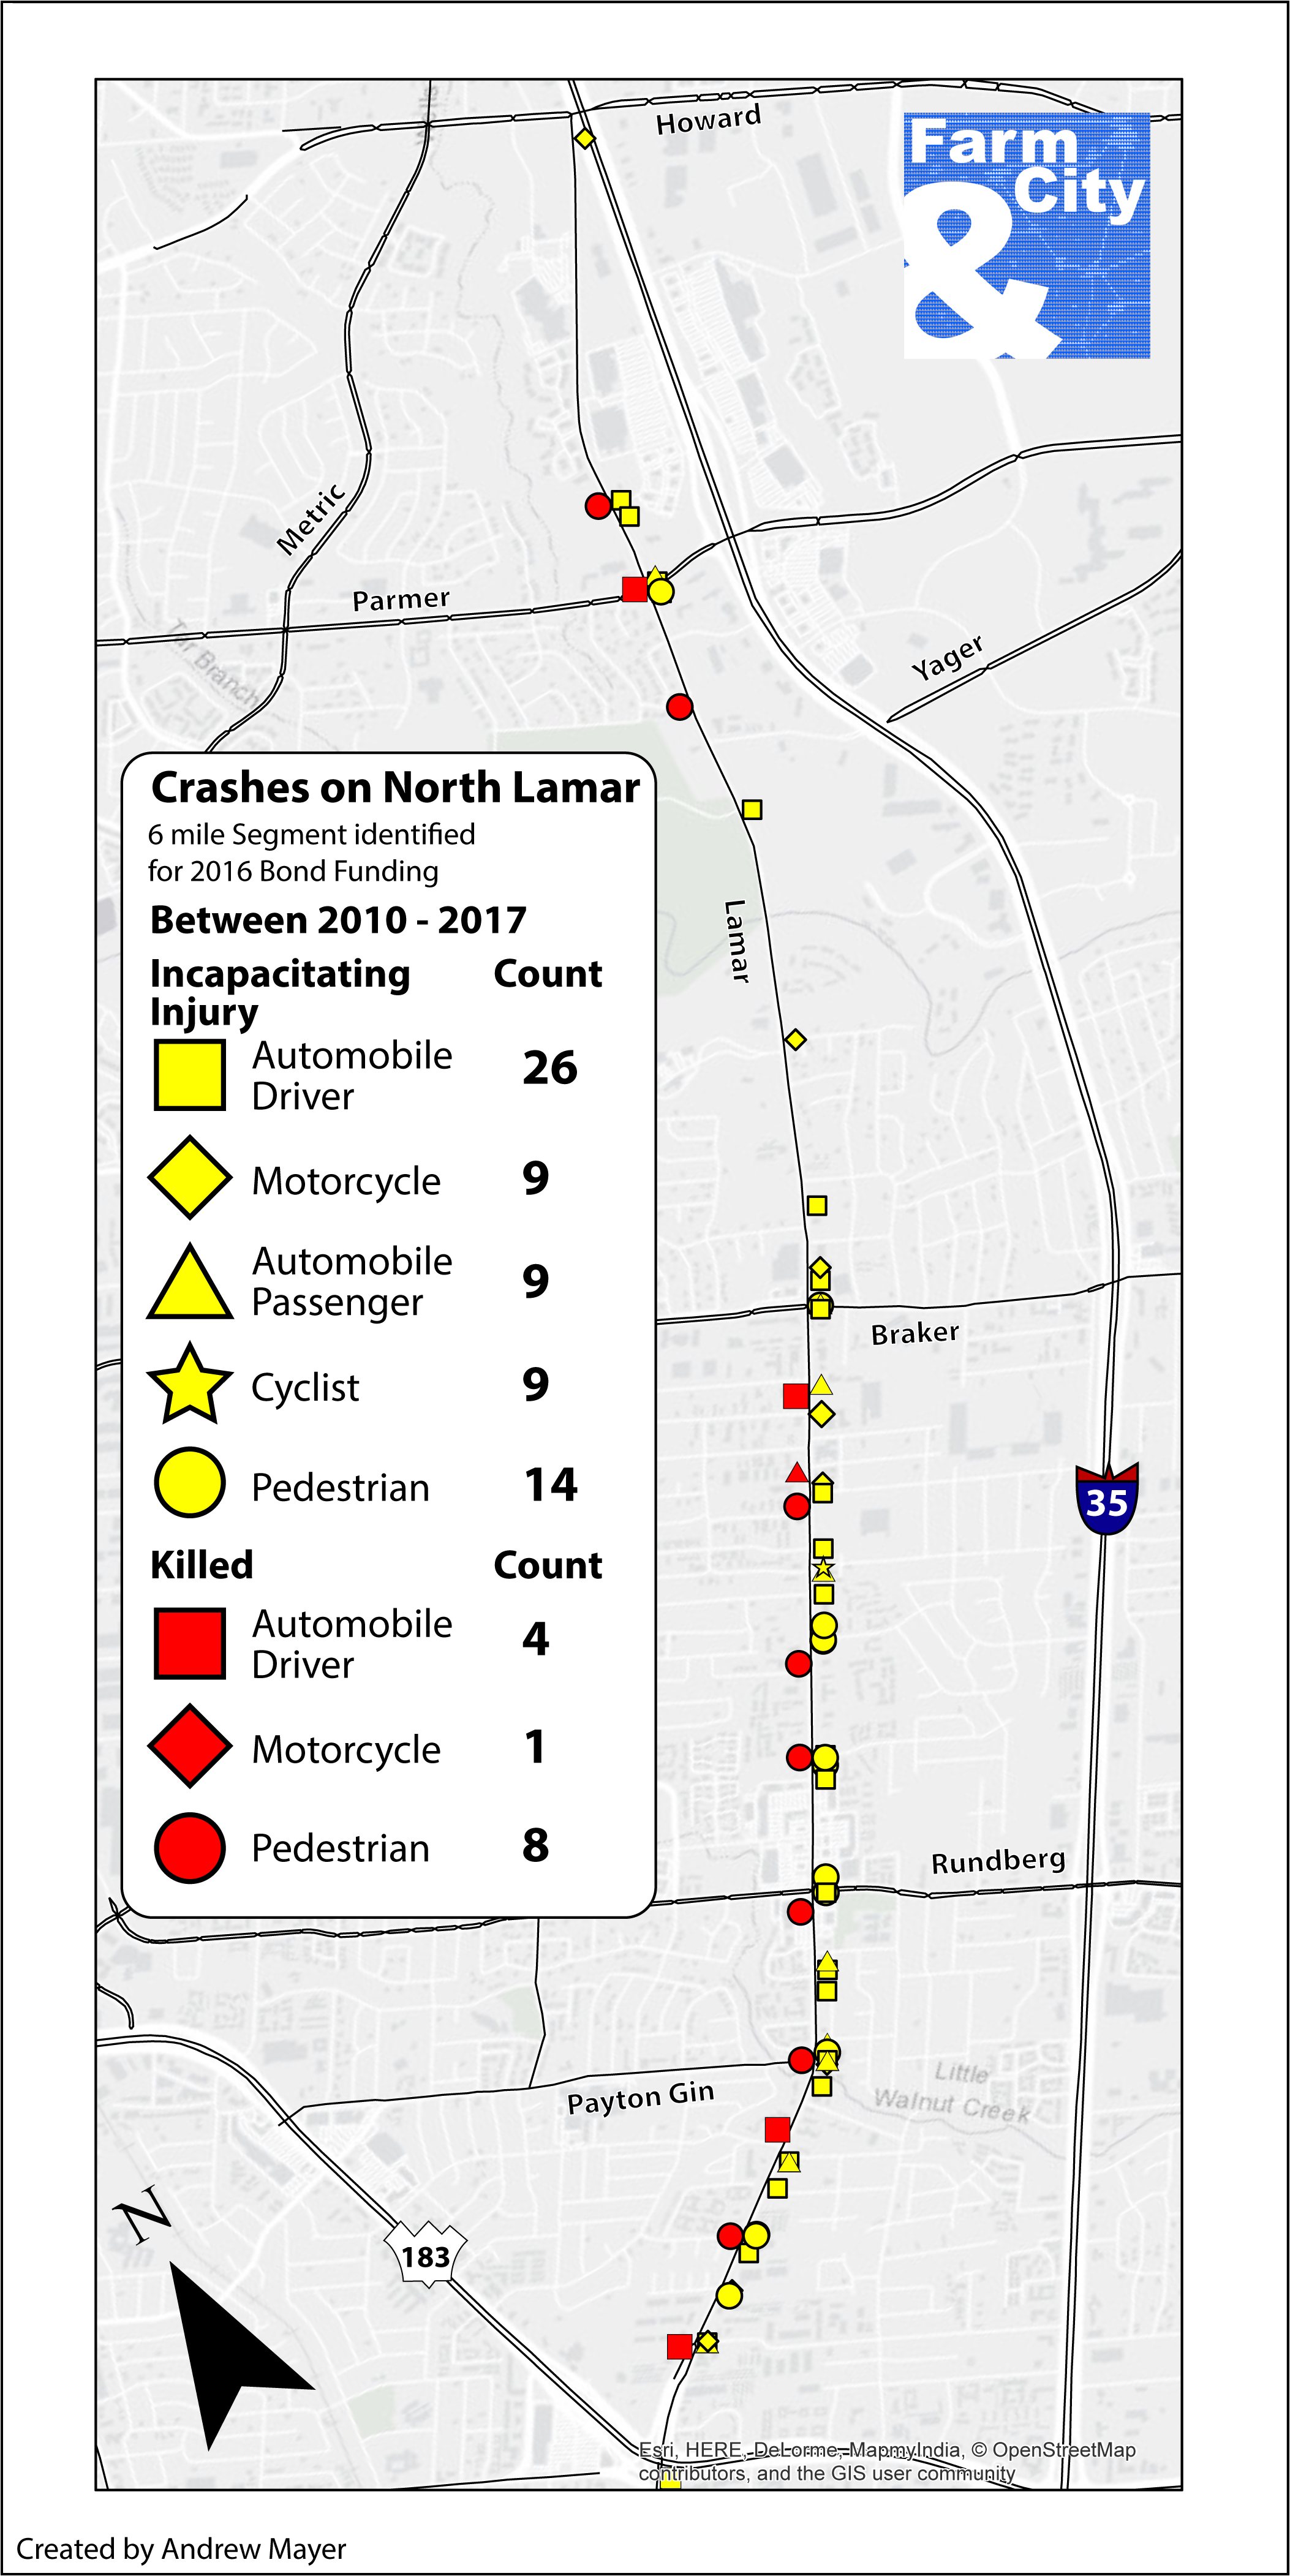 Click to view larger. (Map by: Farm&City. Data source:  TXDOT CRIS Database .)